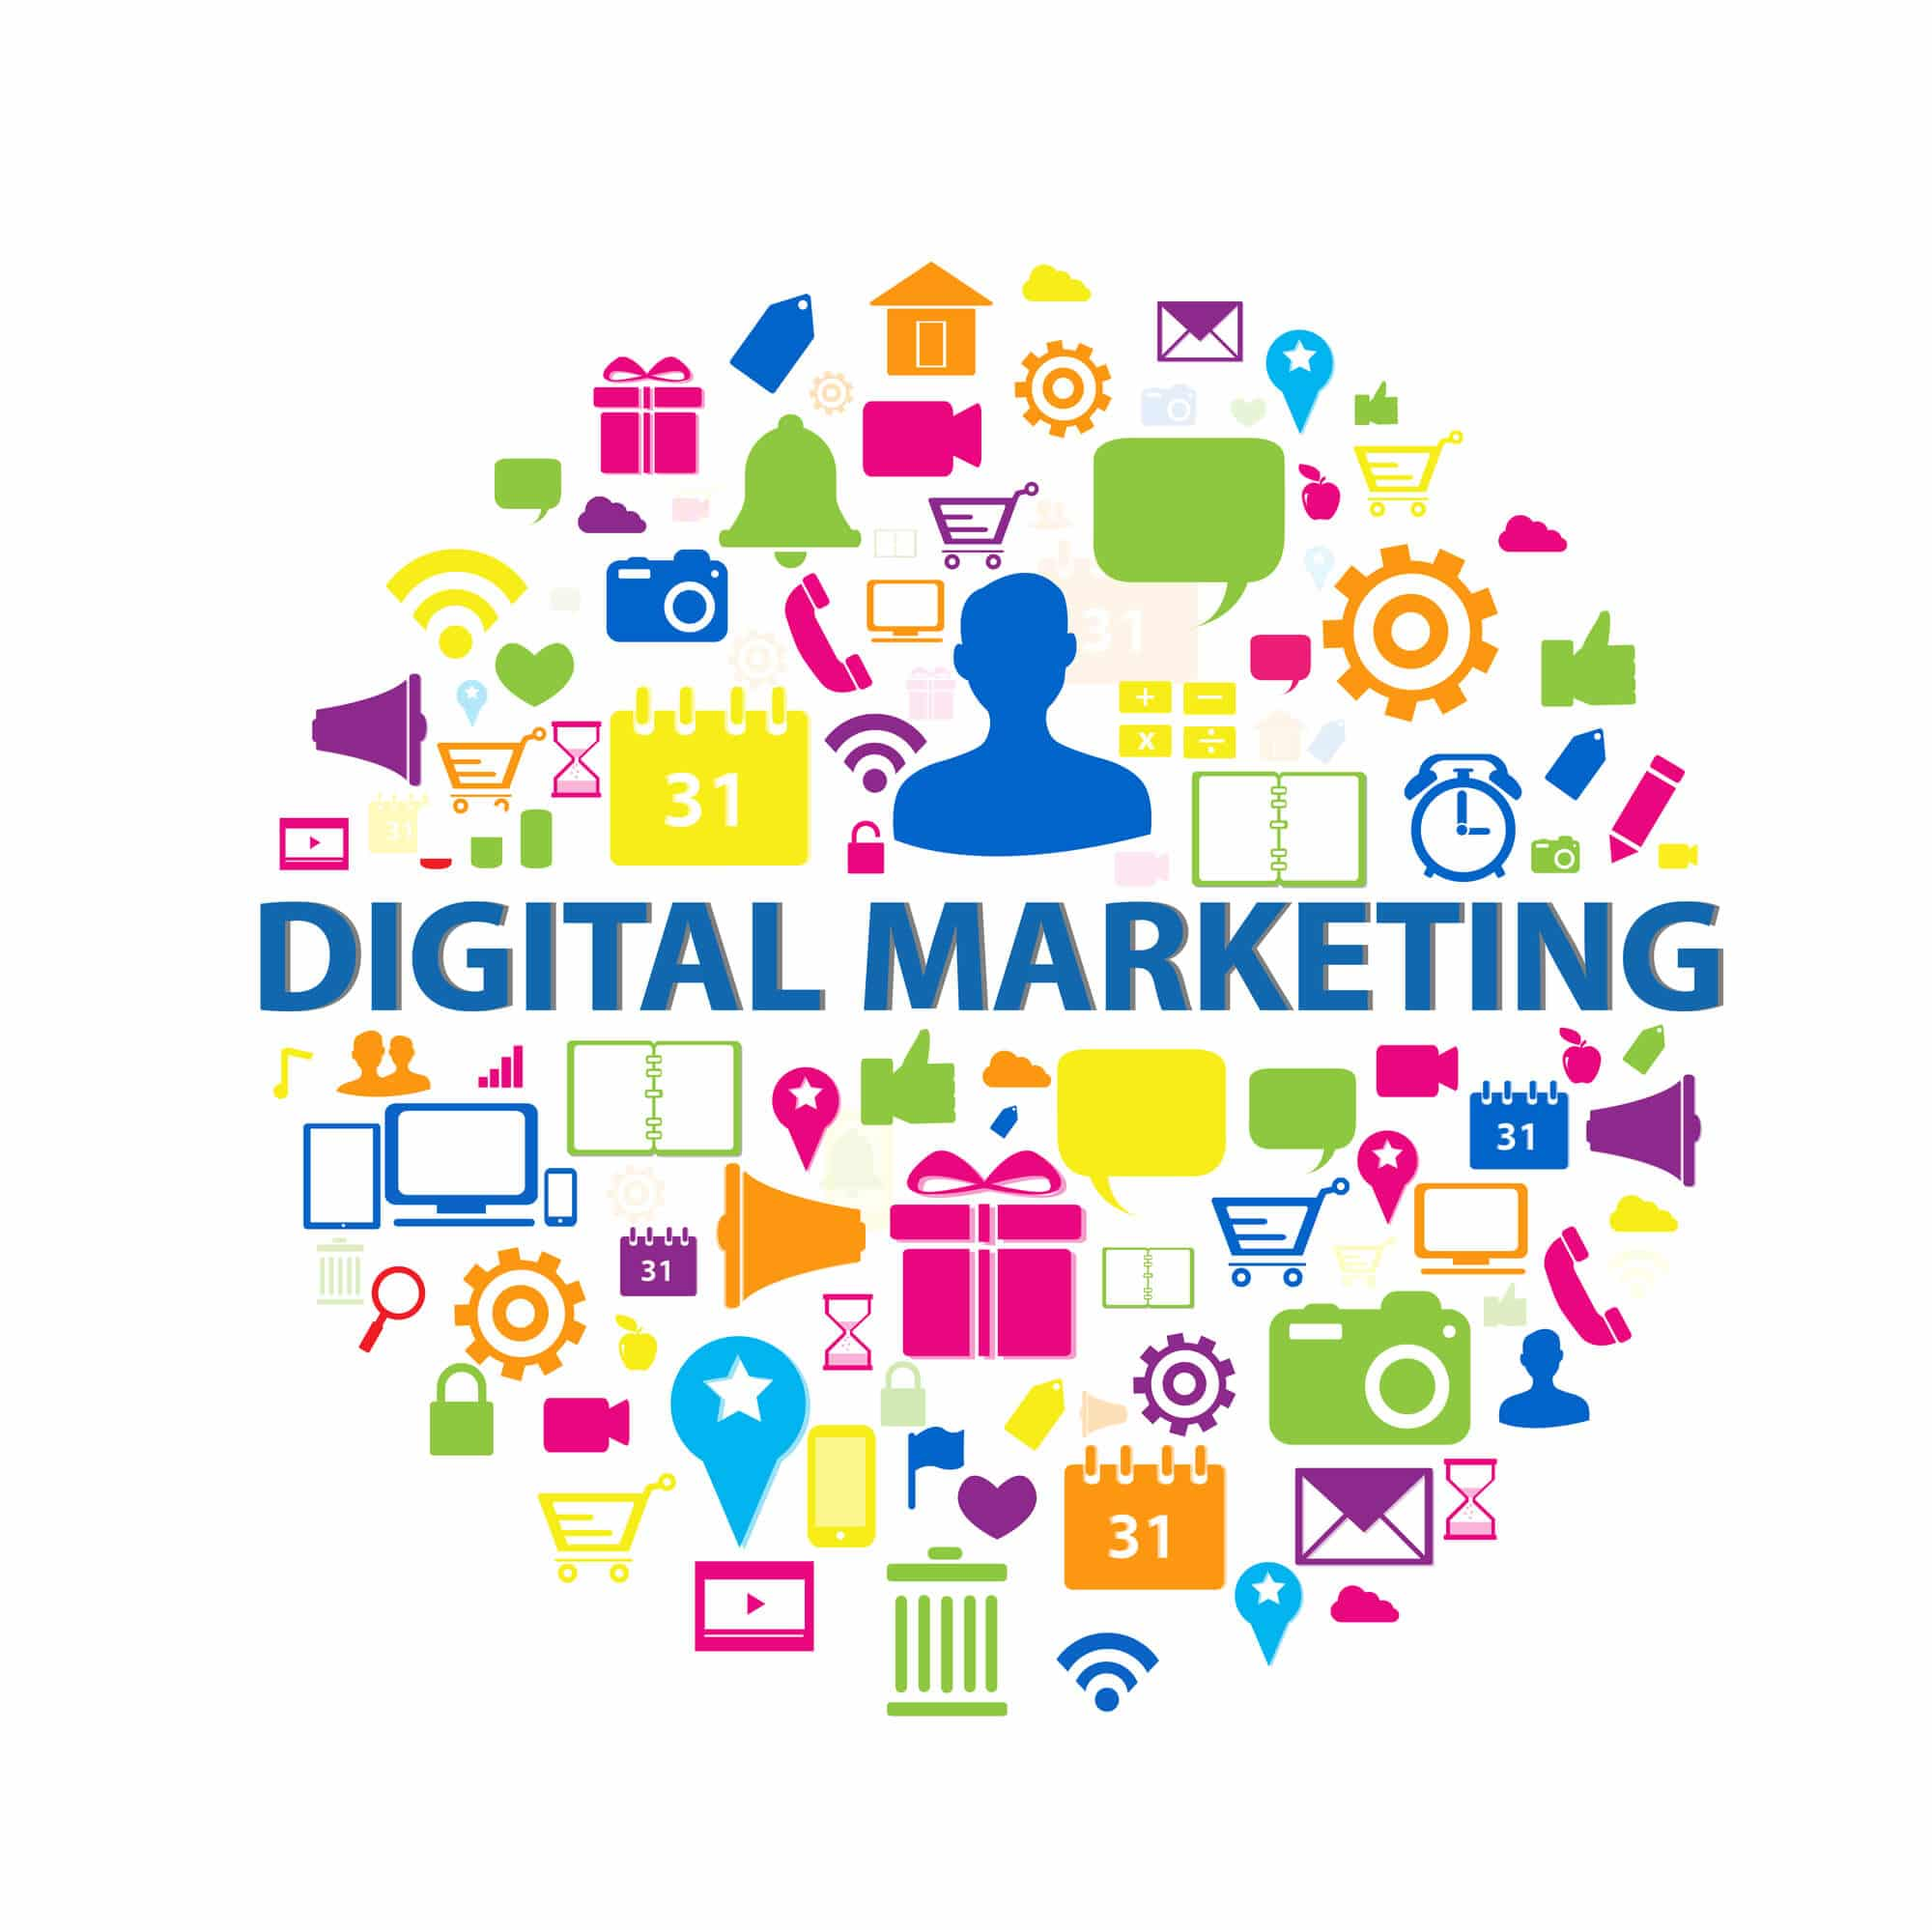 digital marketing company in new orleans - Infintech Designs